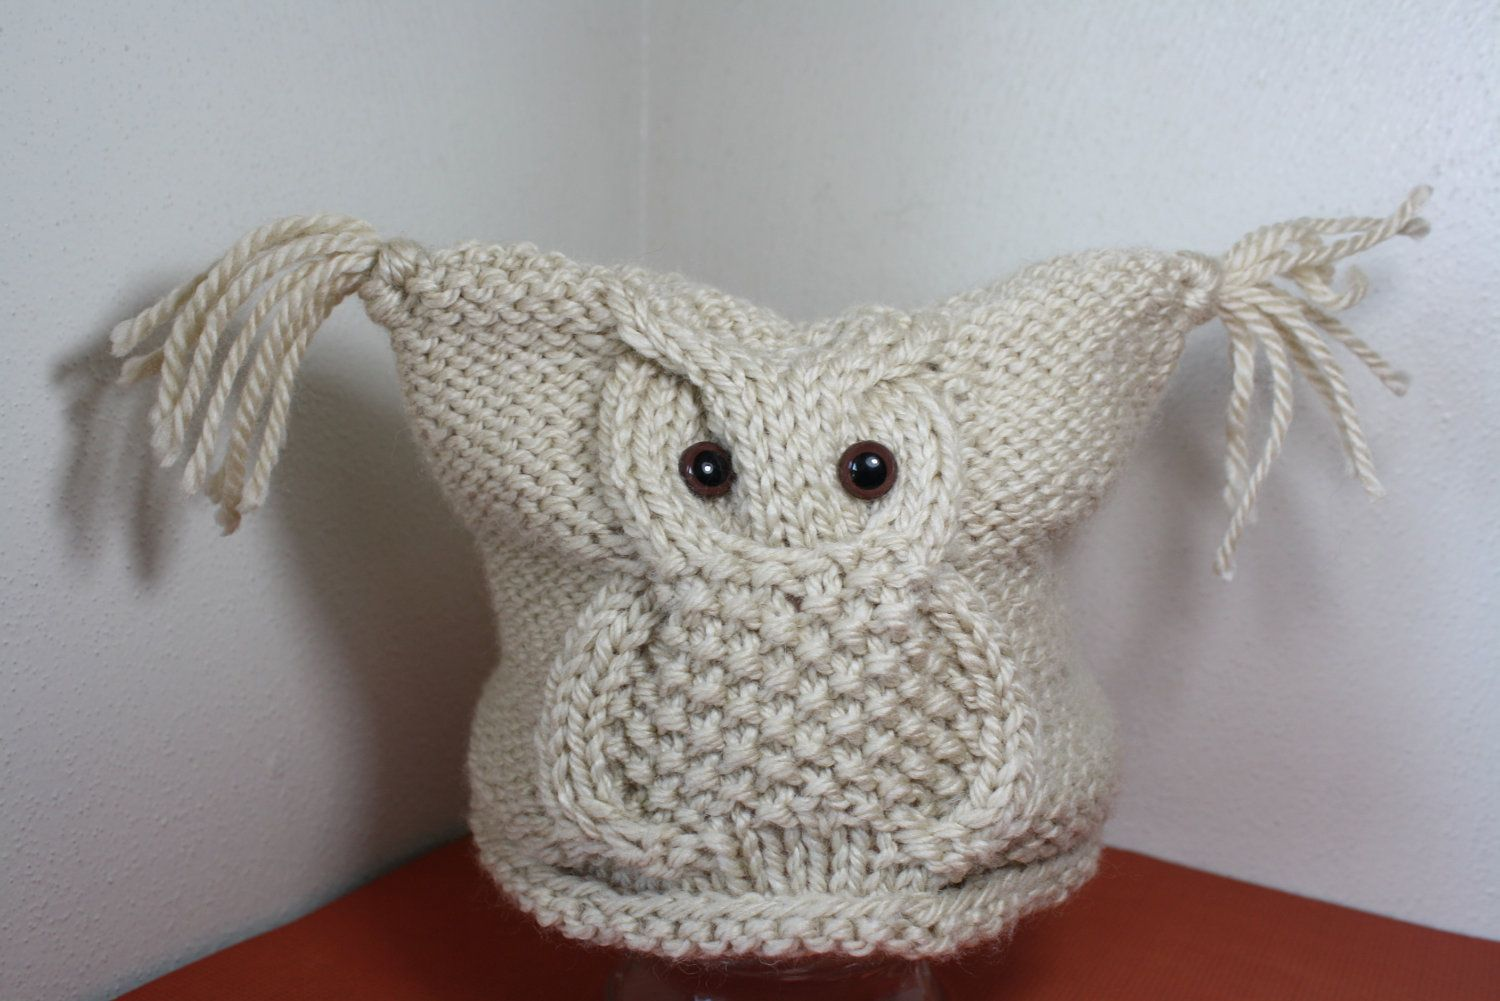 Owl knit hat here. When Serena wears cute winter hats to school ...